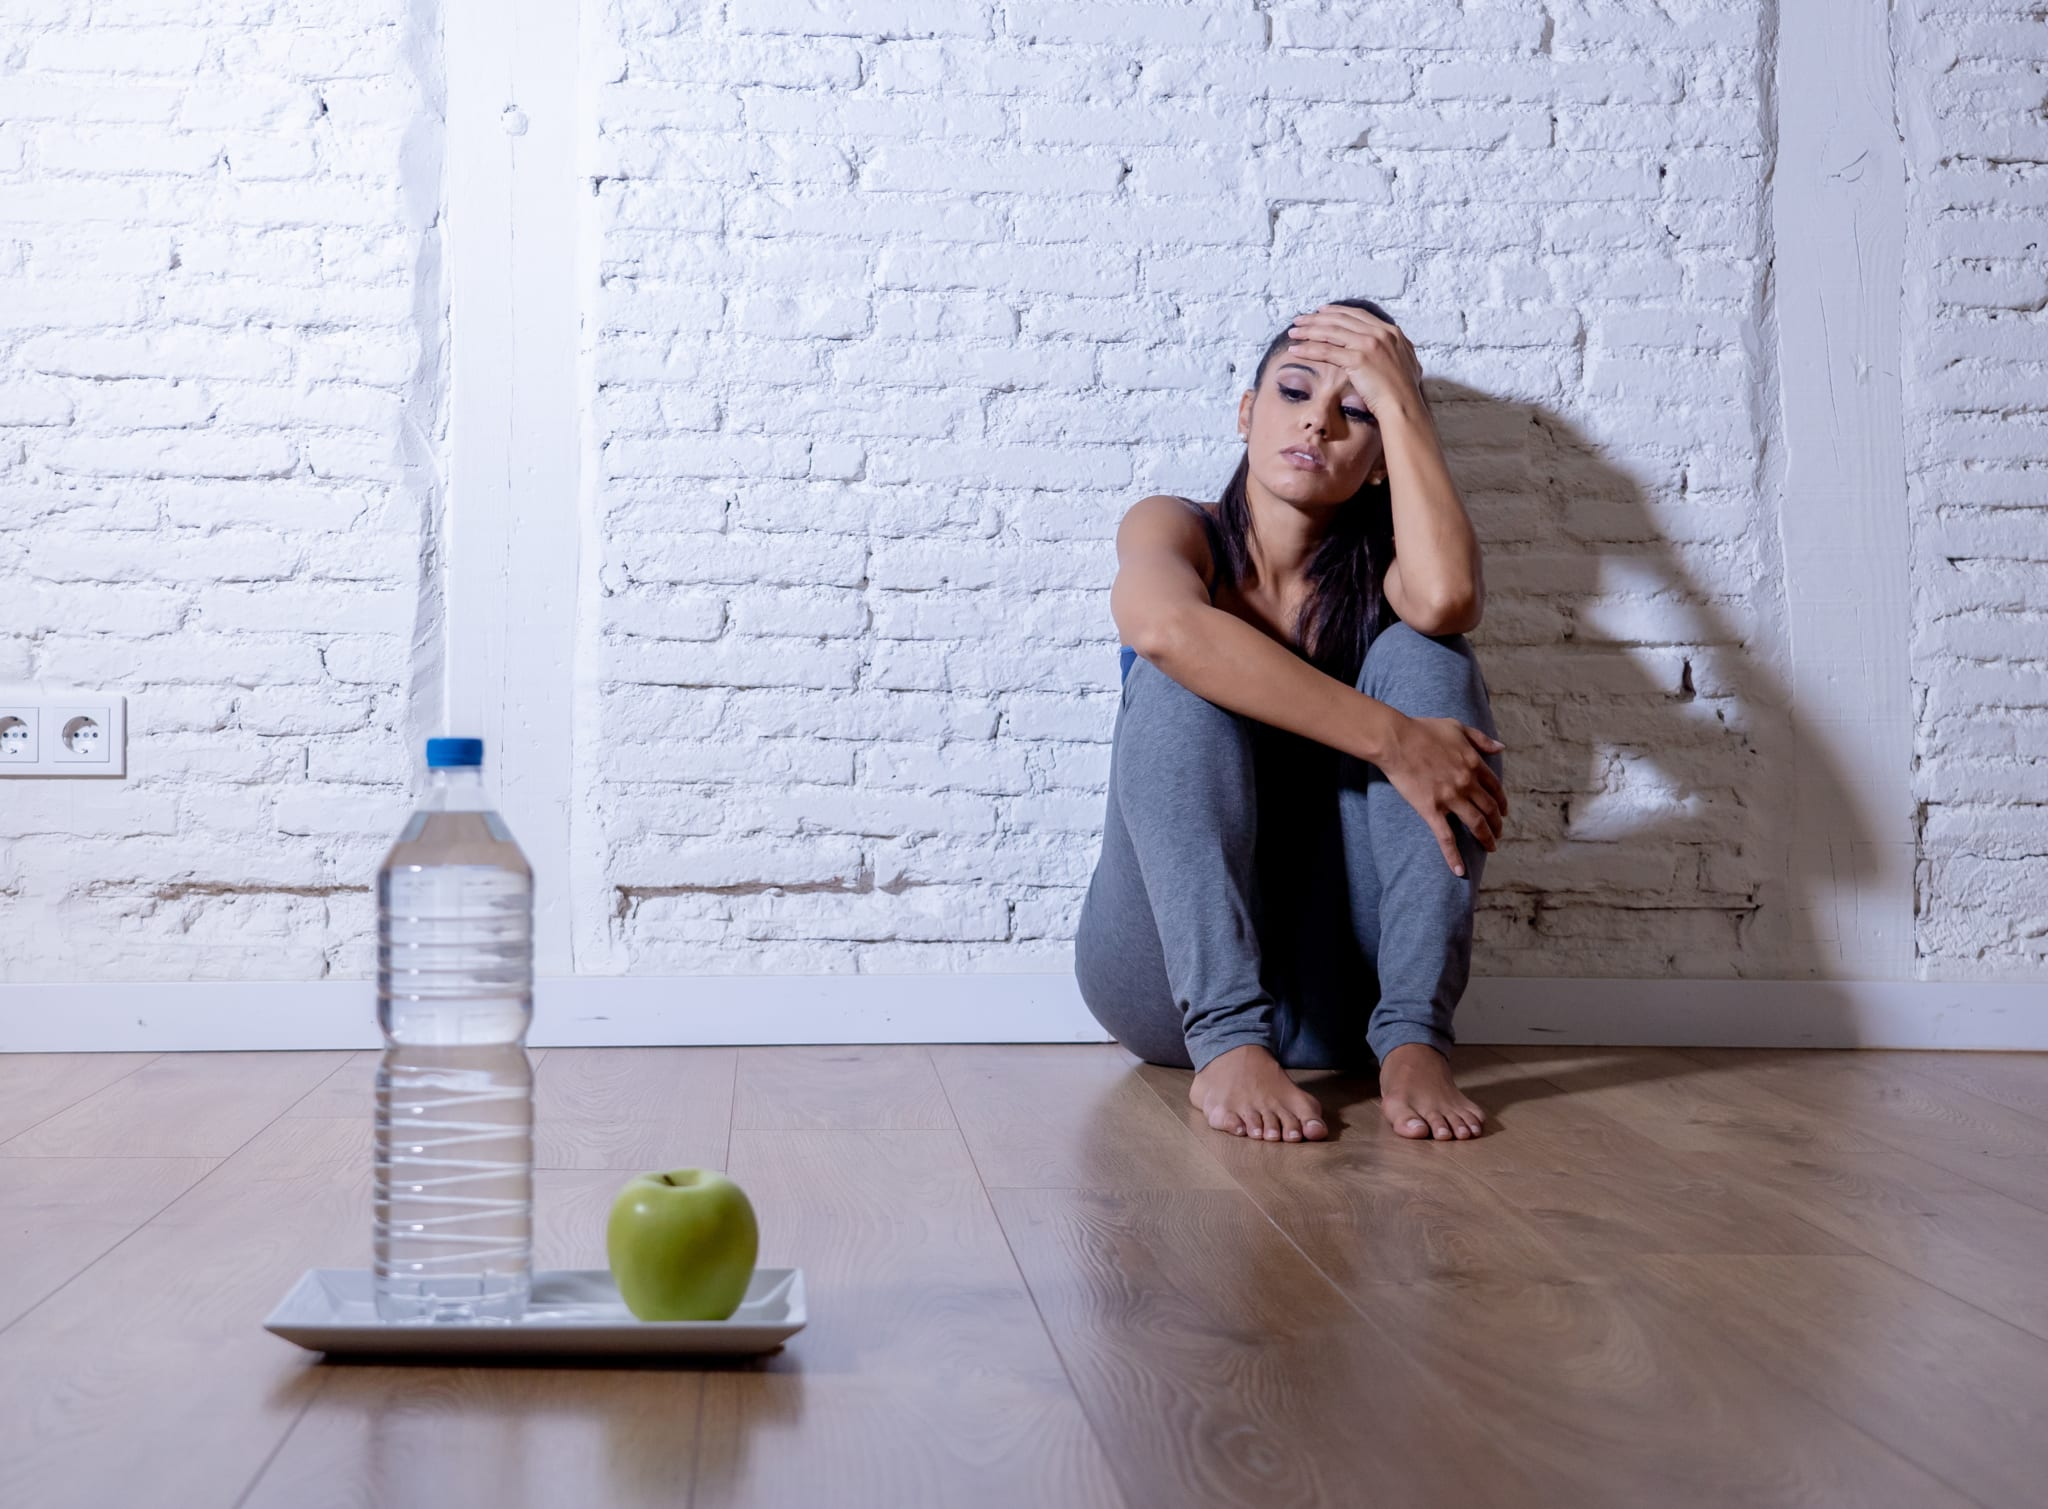 Image of a woman sitting against a wall looking at a water bottle and a green apple.